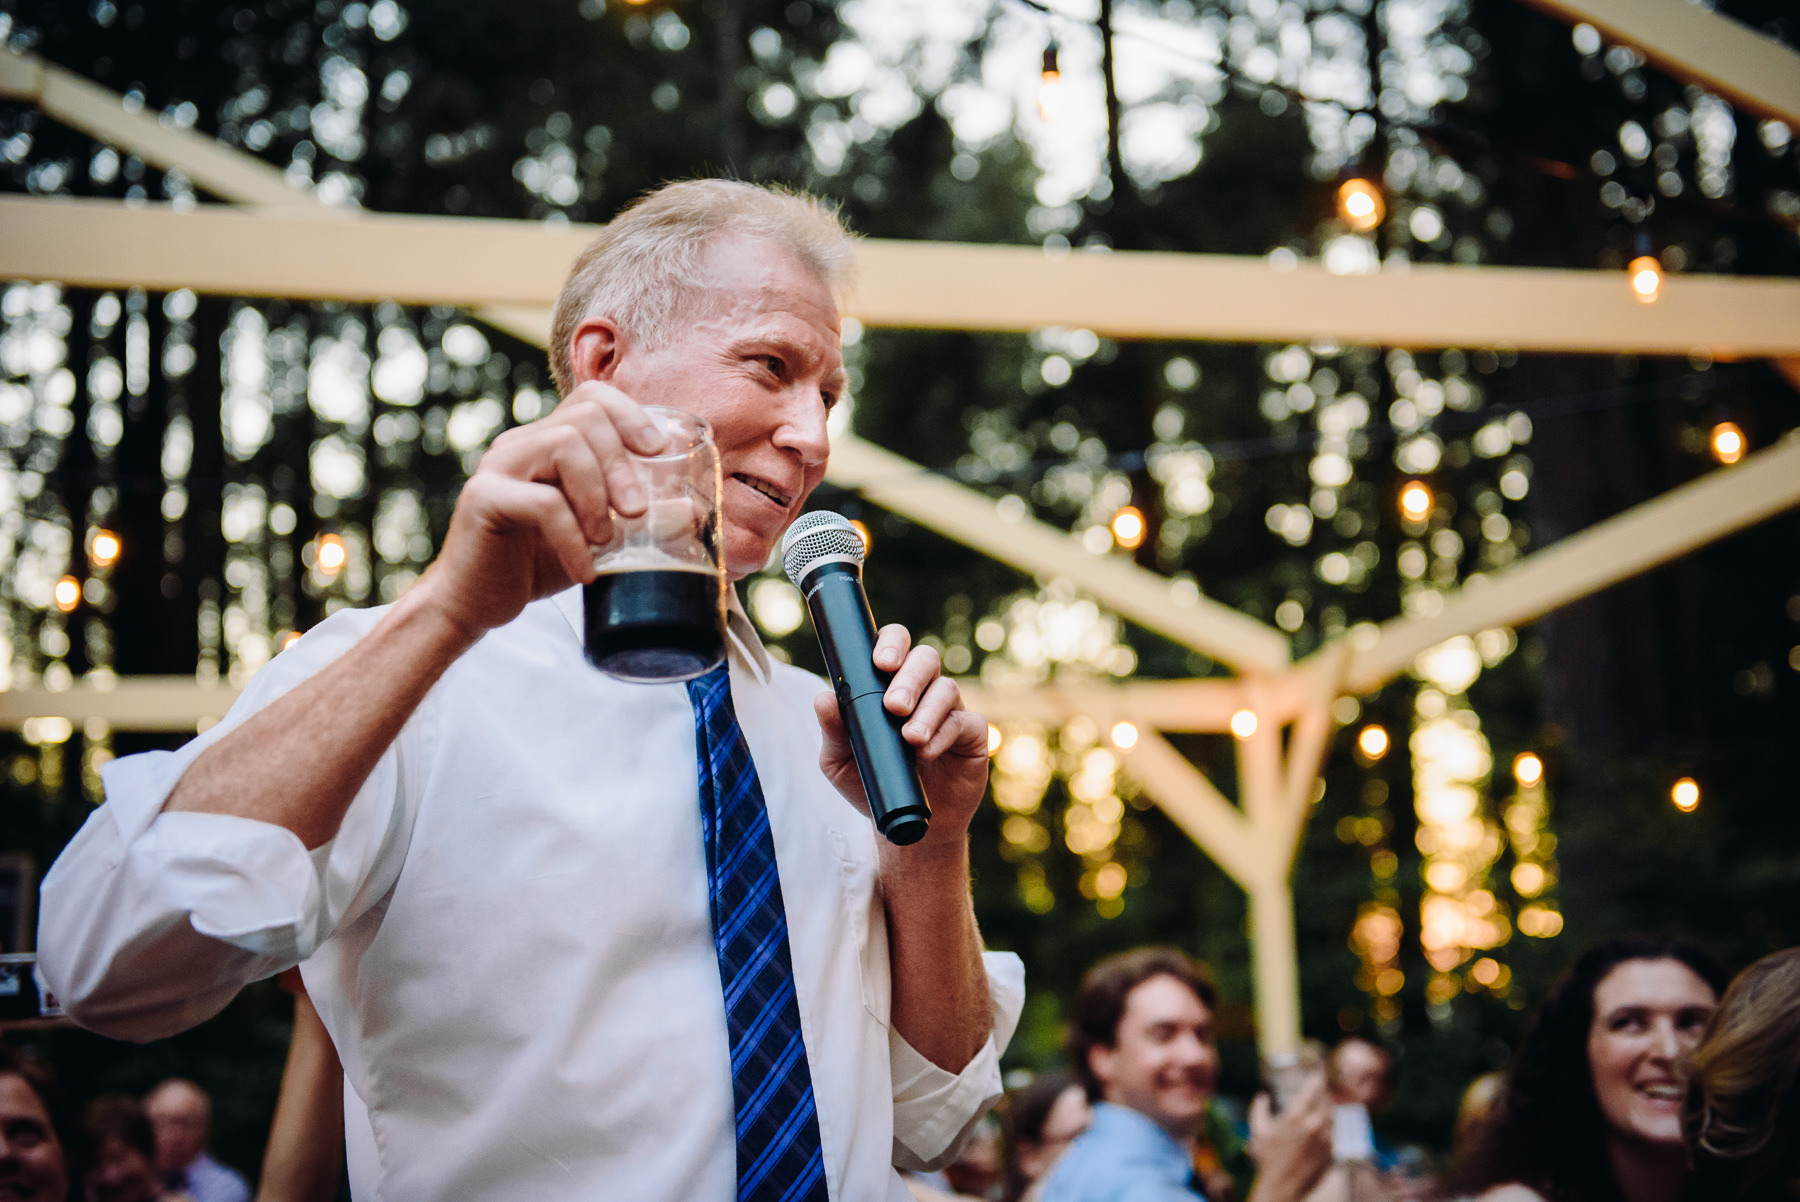 father wedding toast